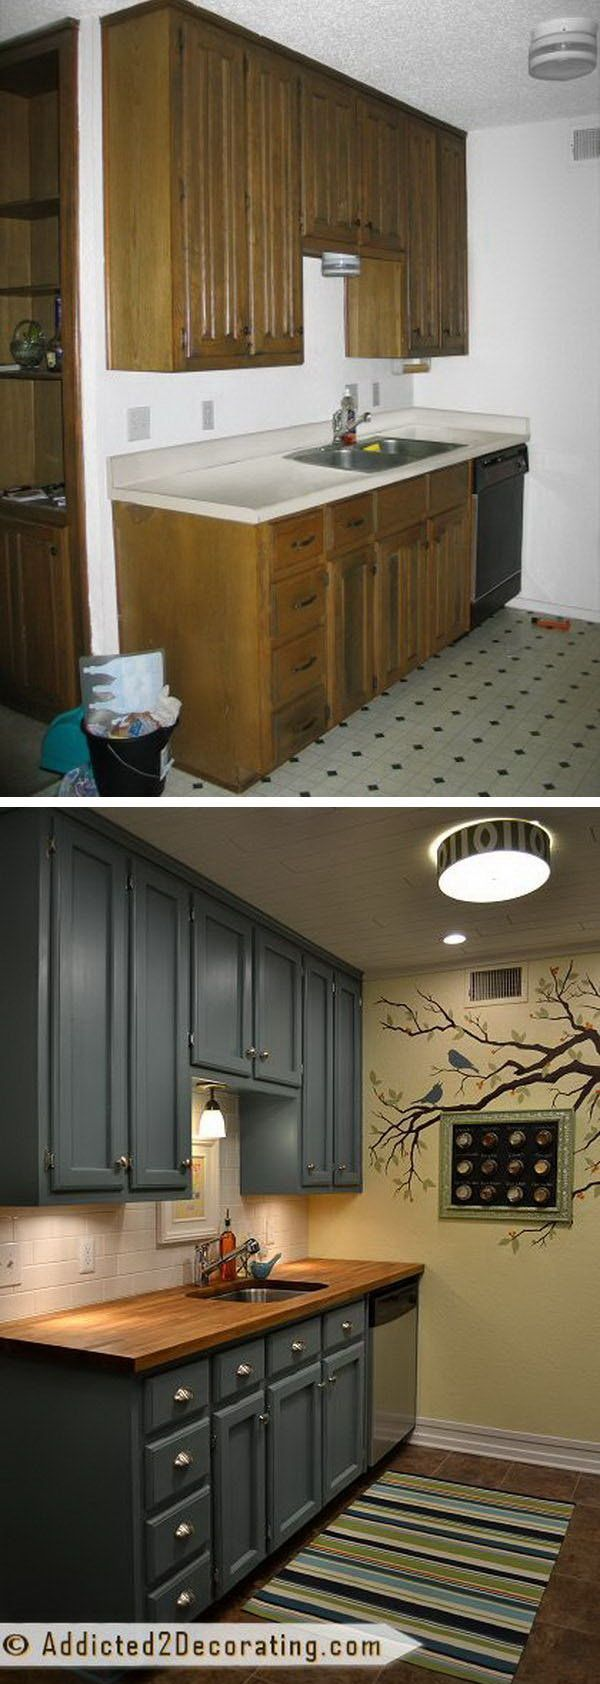 Astonishing 17 Best Ideas About Small House Decorating On Pinterest Small Largest Home Design Picture Inspirations Pitcheantrous